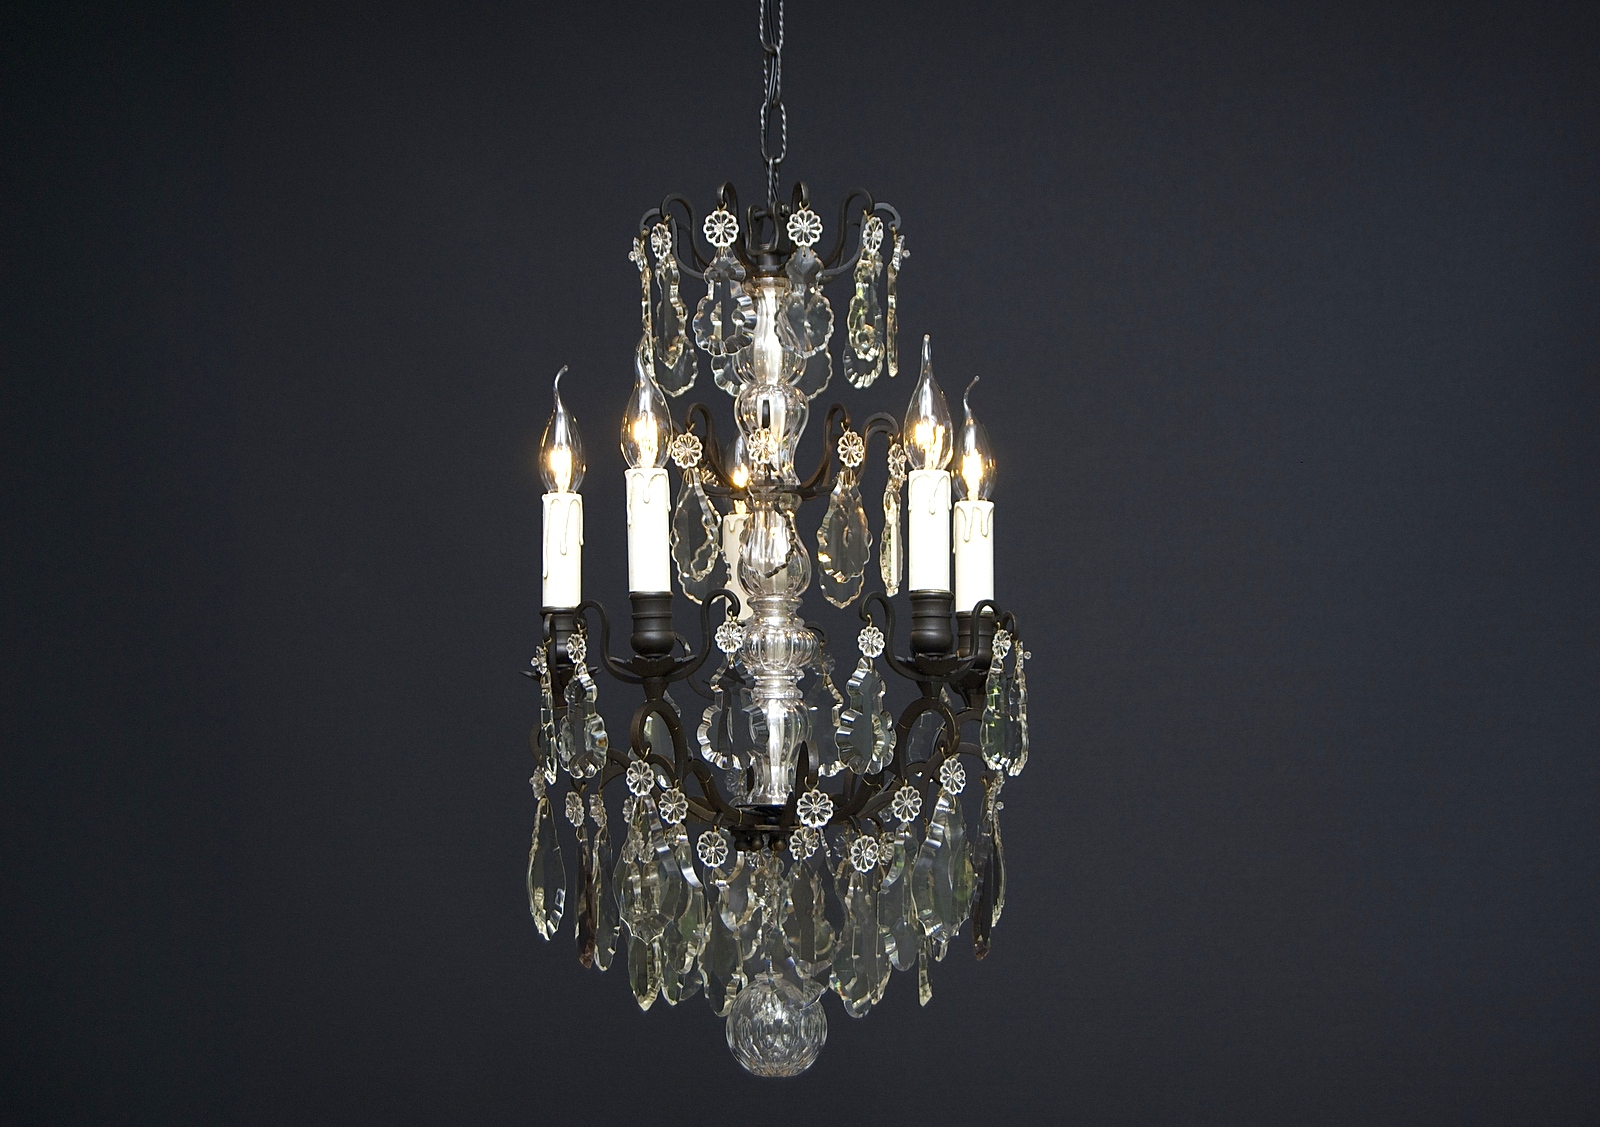 French chandelier with 5 Light, 19th century